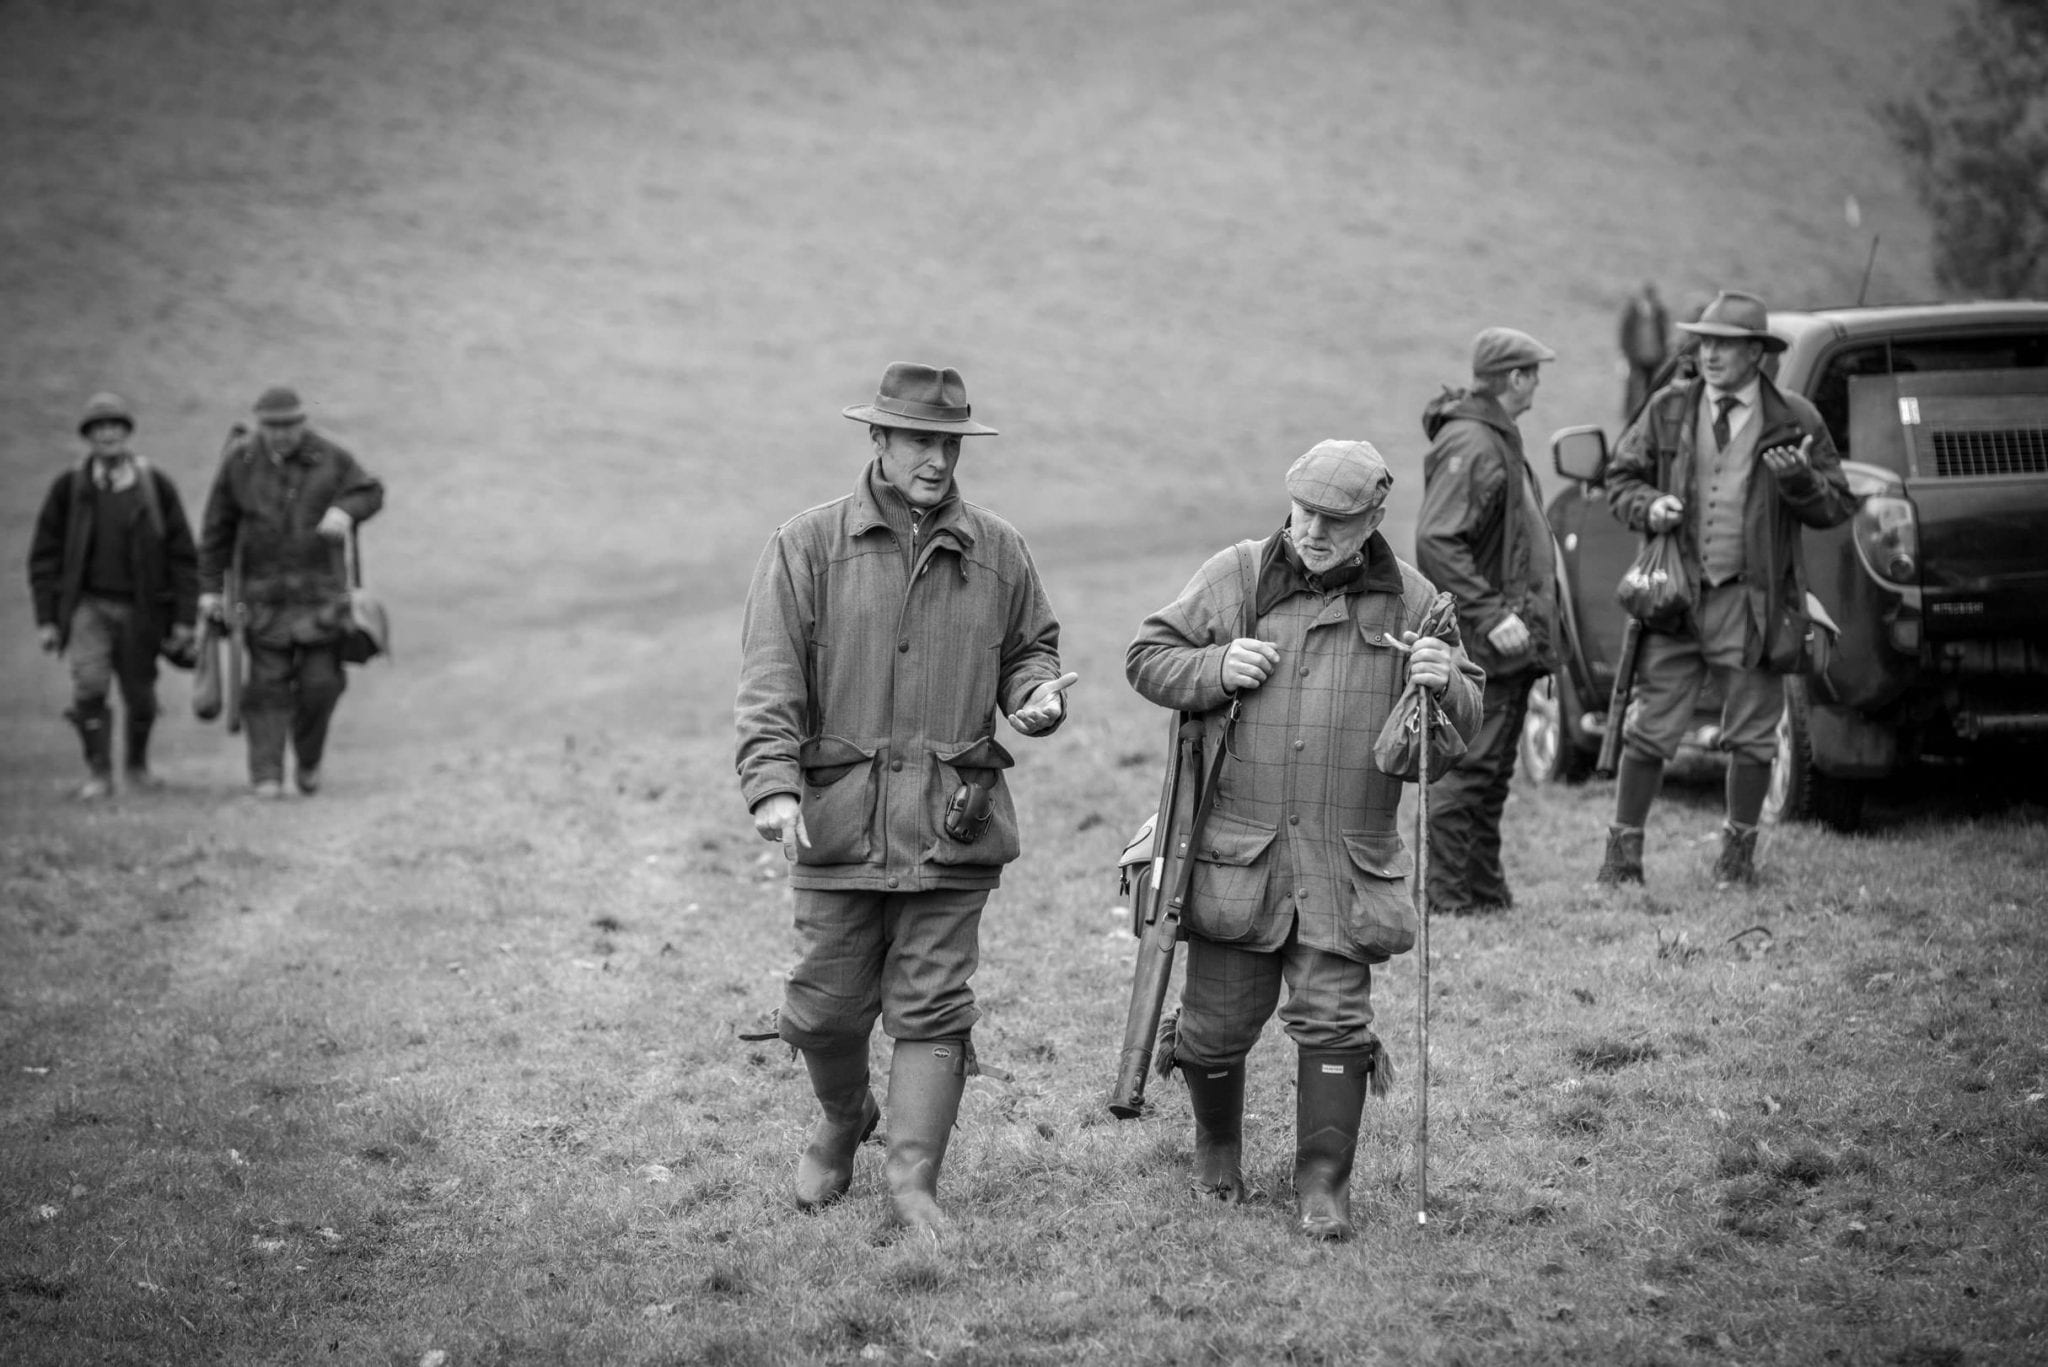 Sim Days - Gentlemen on a shoot as part of Lady's Wood Shooting School Sporting Agency at Perrystone Estate